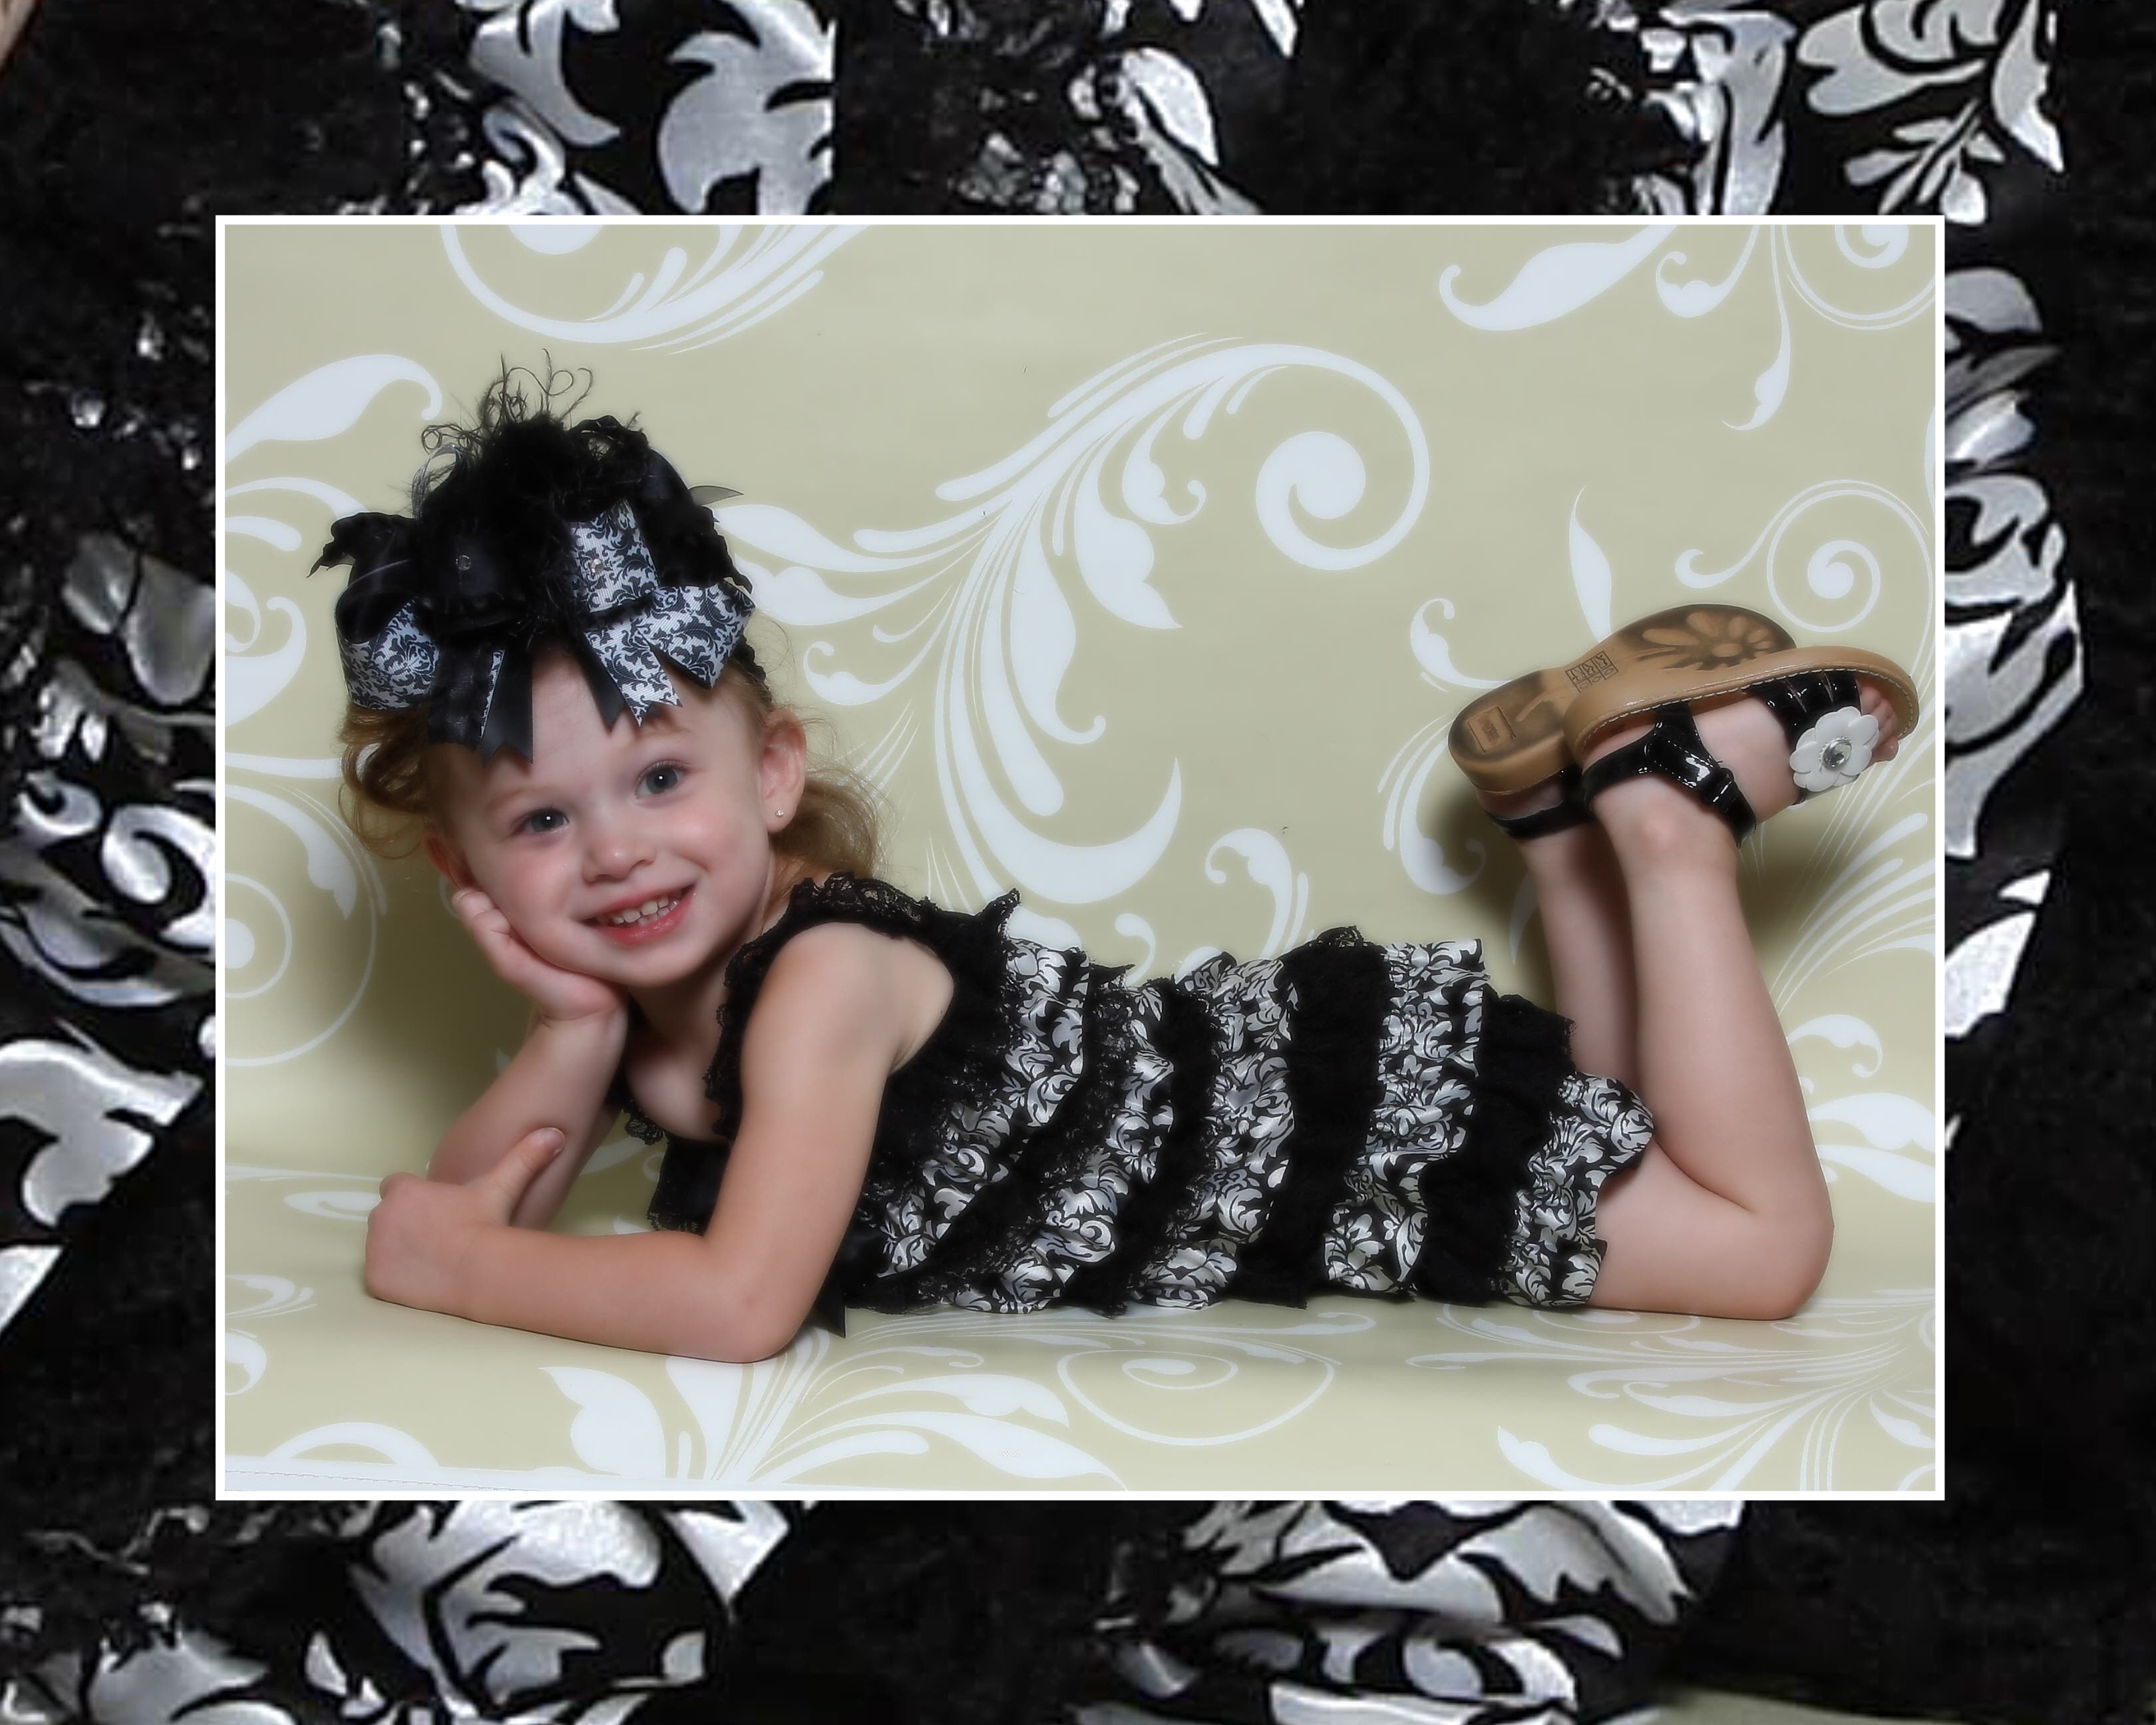 de3b86e4d4f6 Buy Baby Rompers Online at Beautiful Bows Boutique